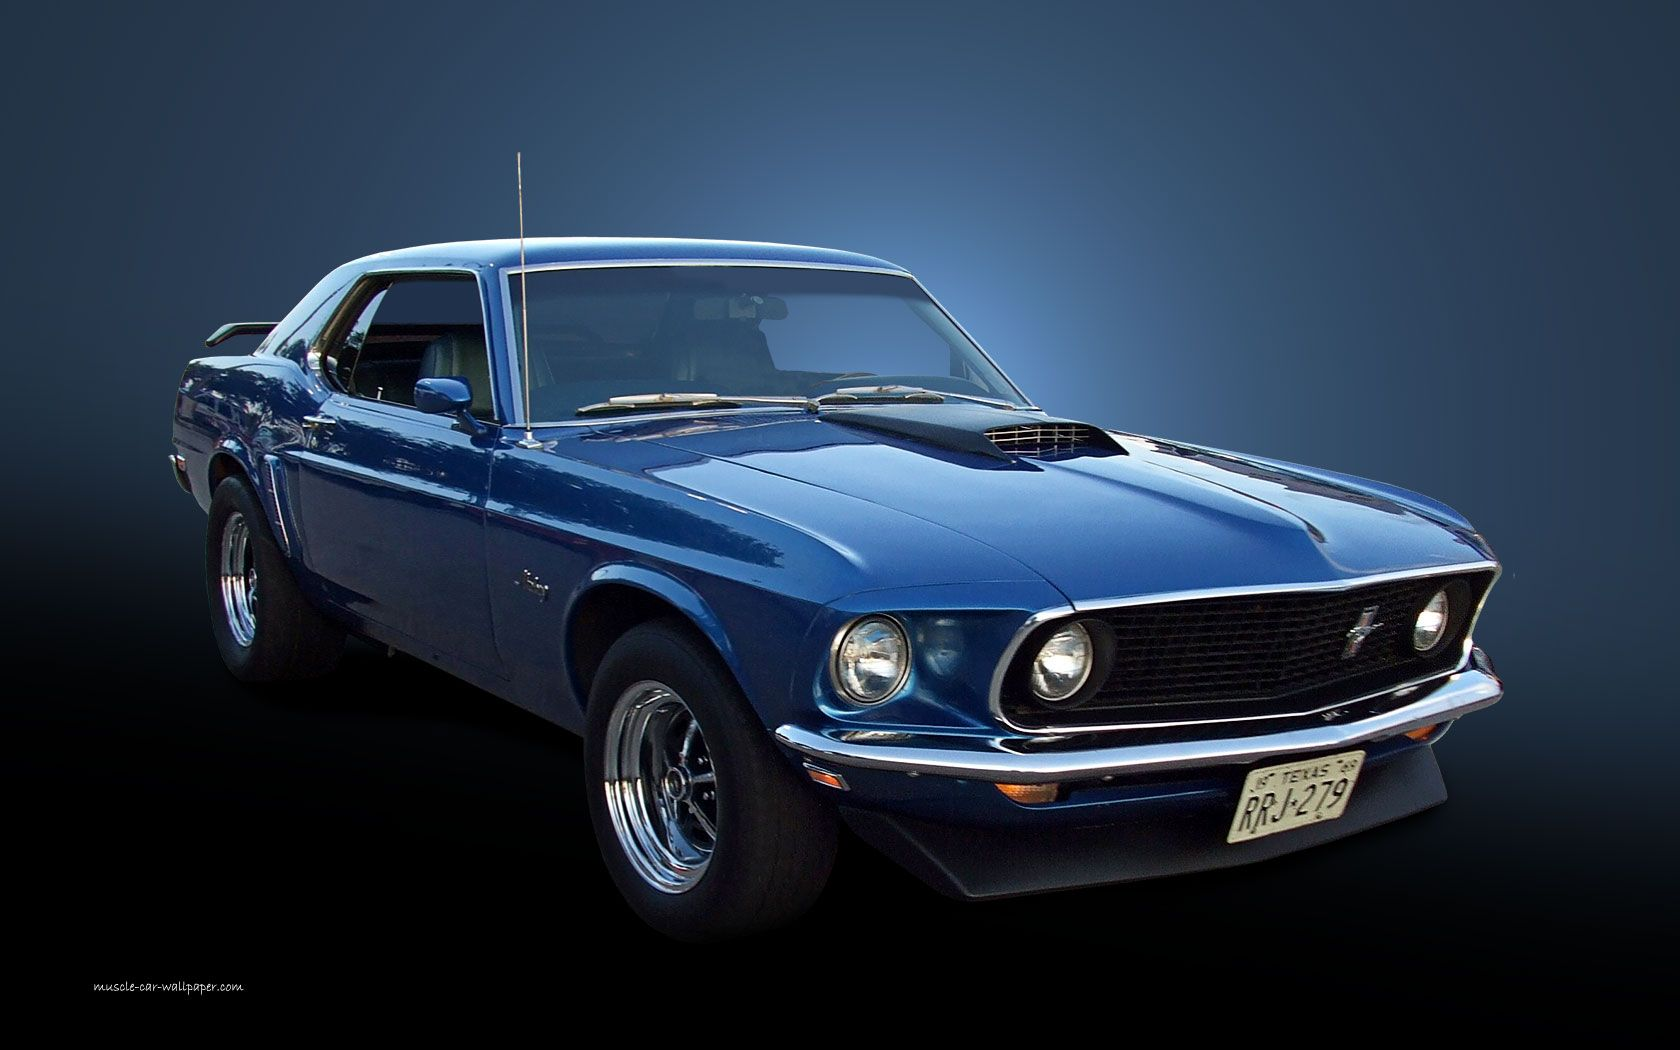 1969 ford mustang blue hardtop wallpaper right view